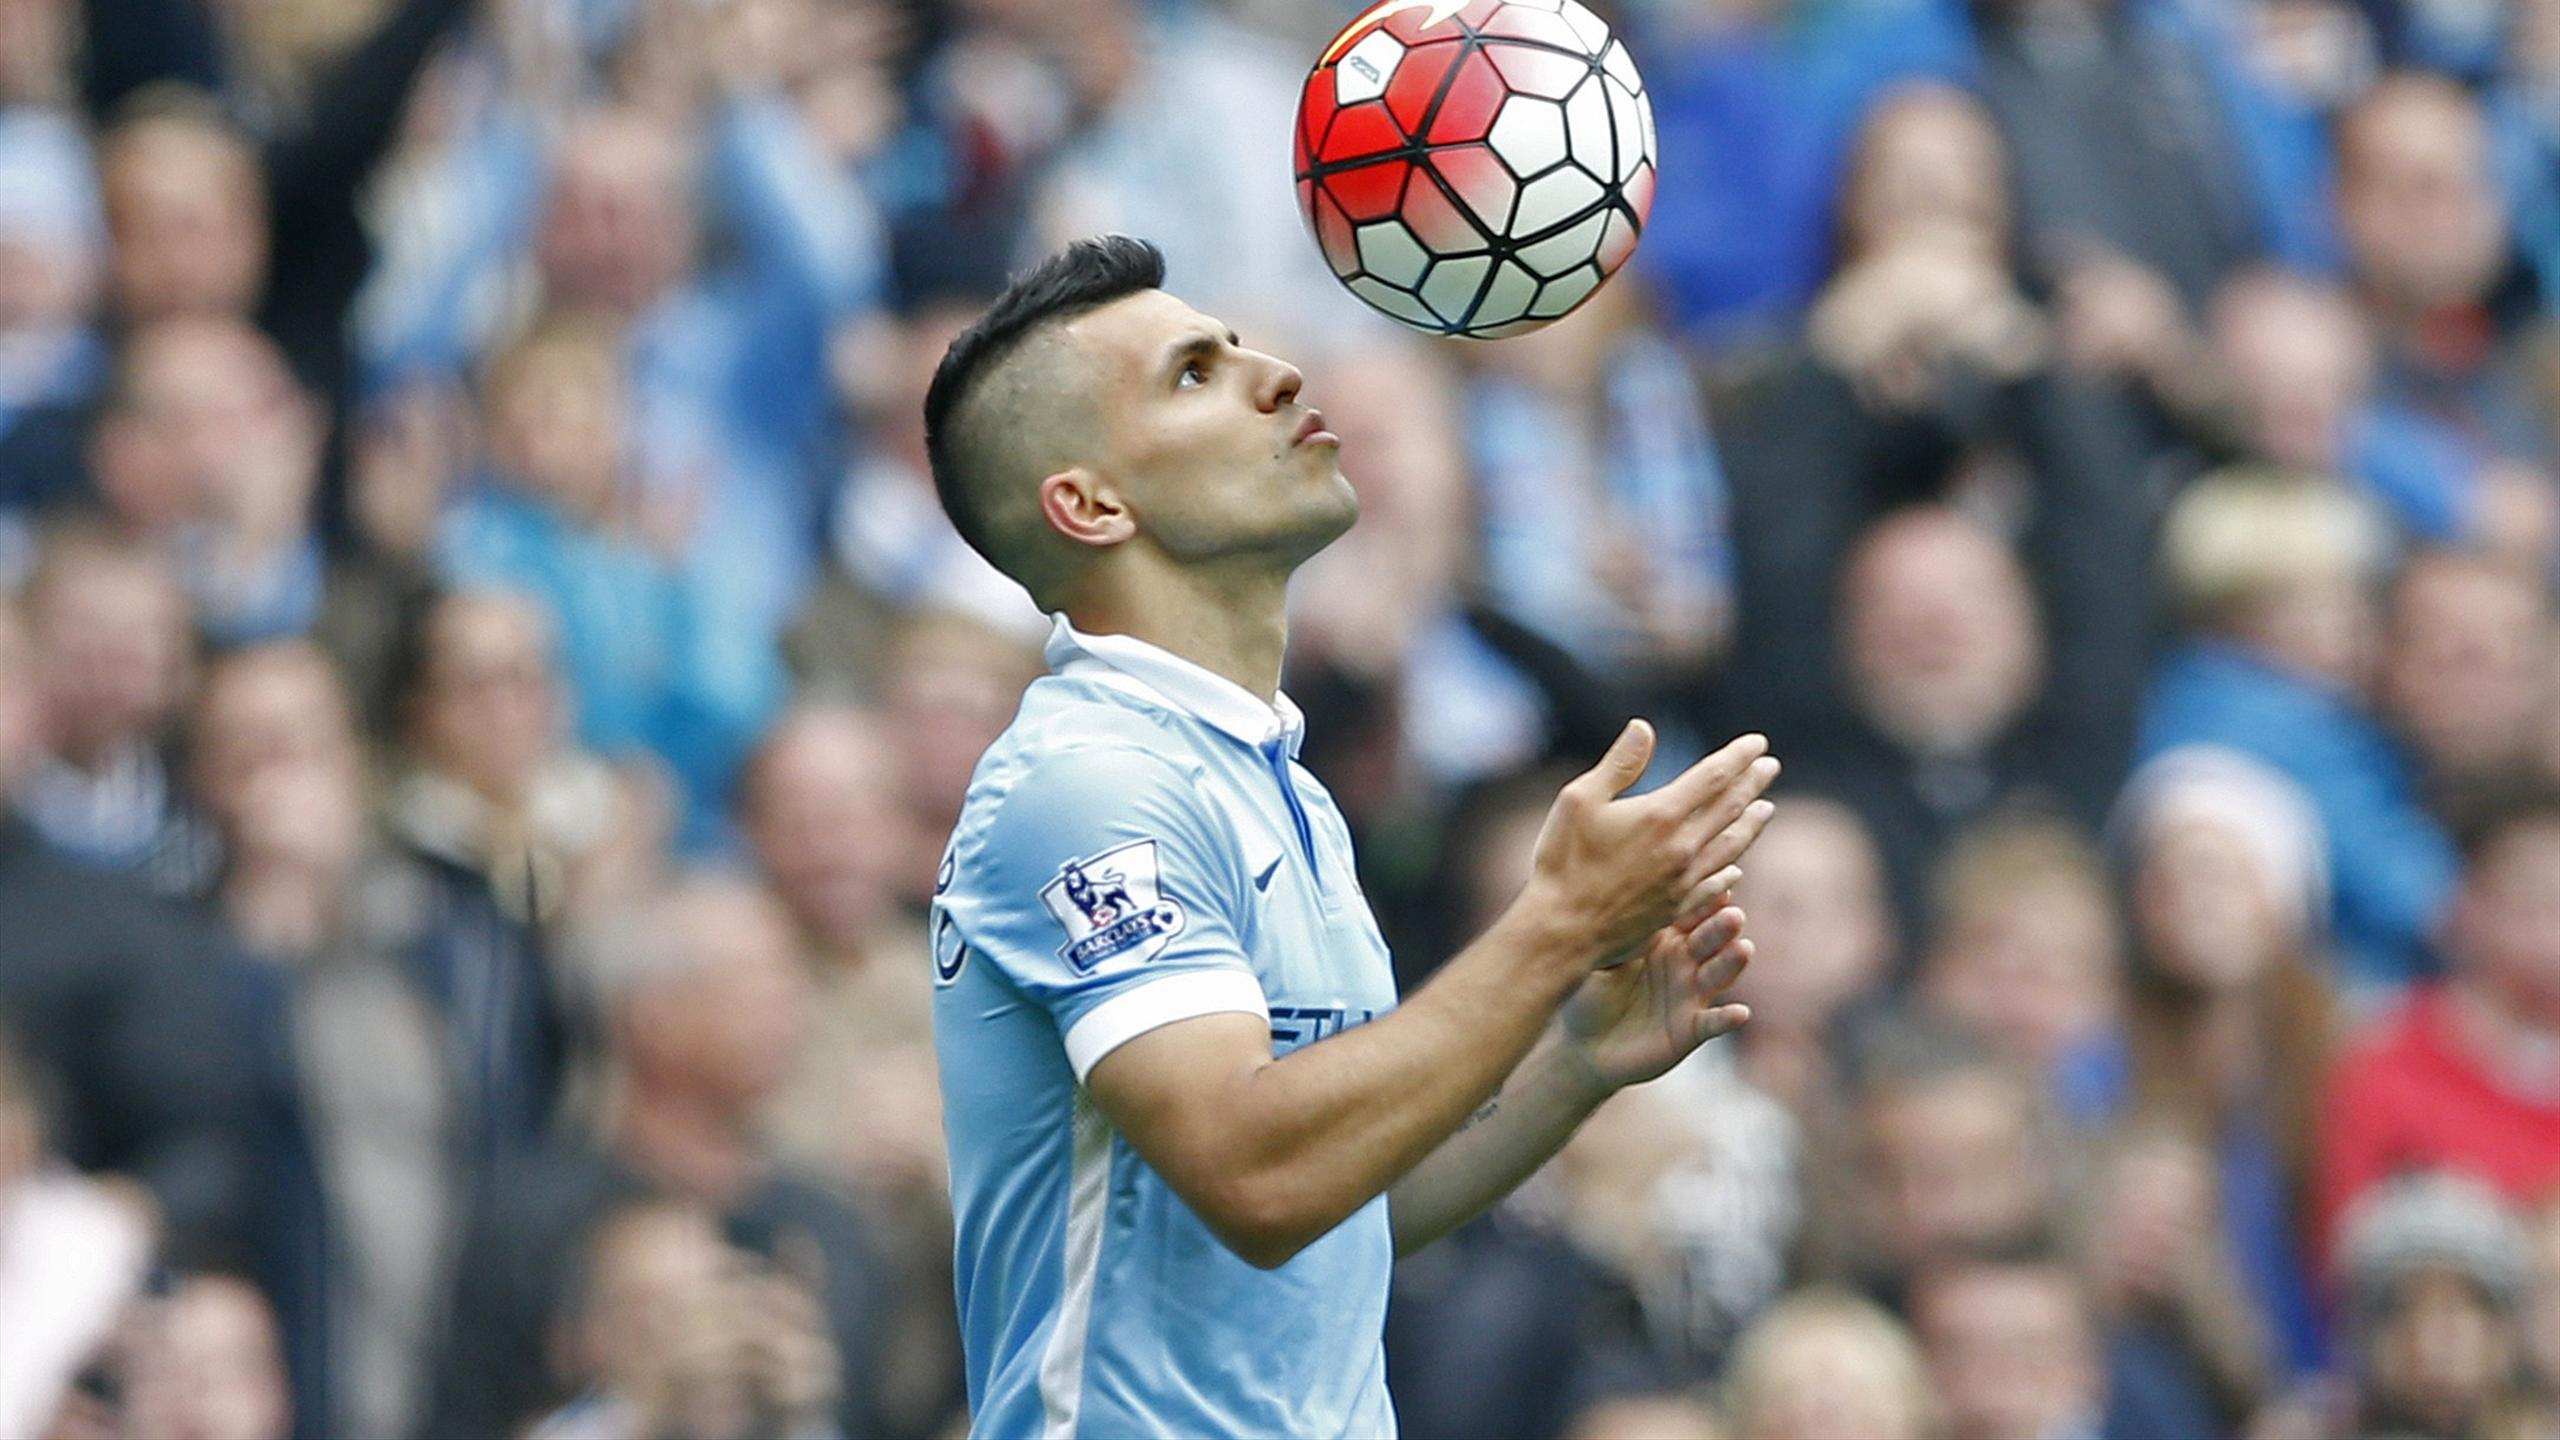 Sergio Aguero celebrates after scoring the third goal for Manchester City and completing his hat trick against Newcastle United